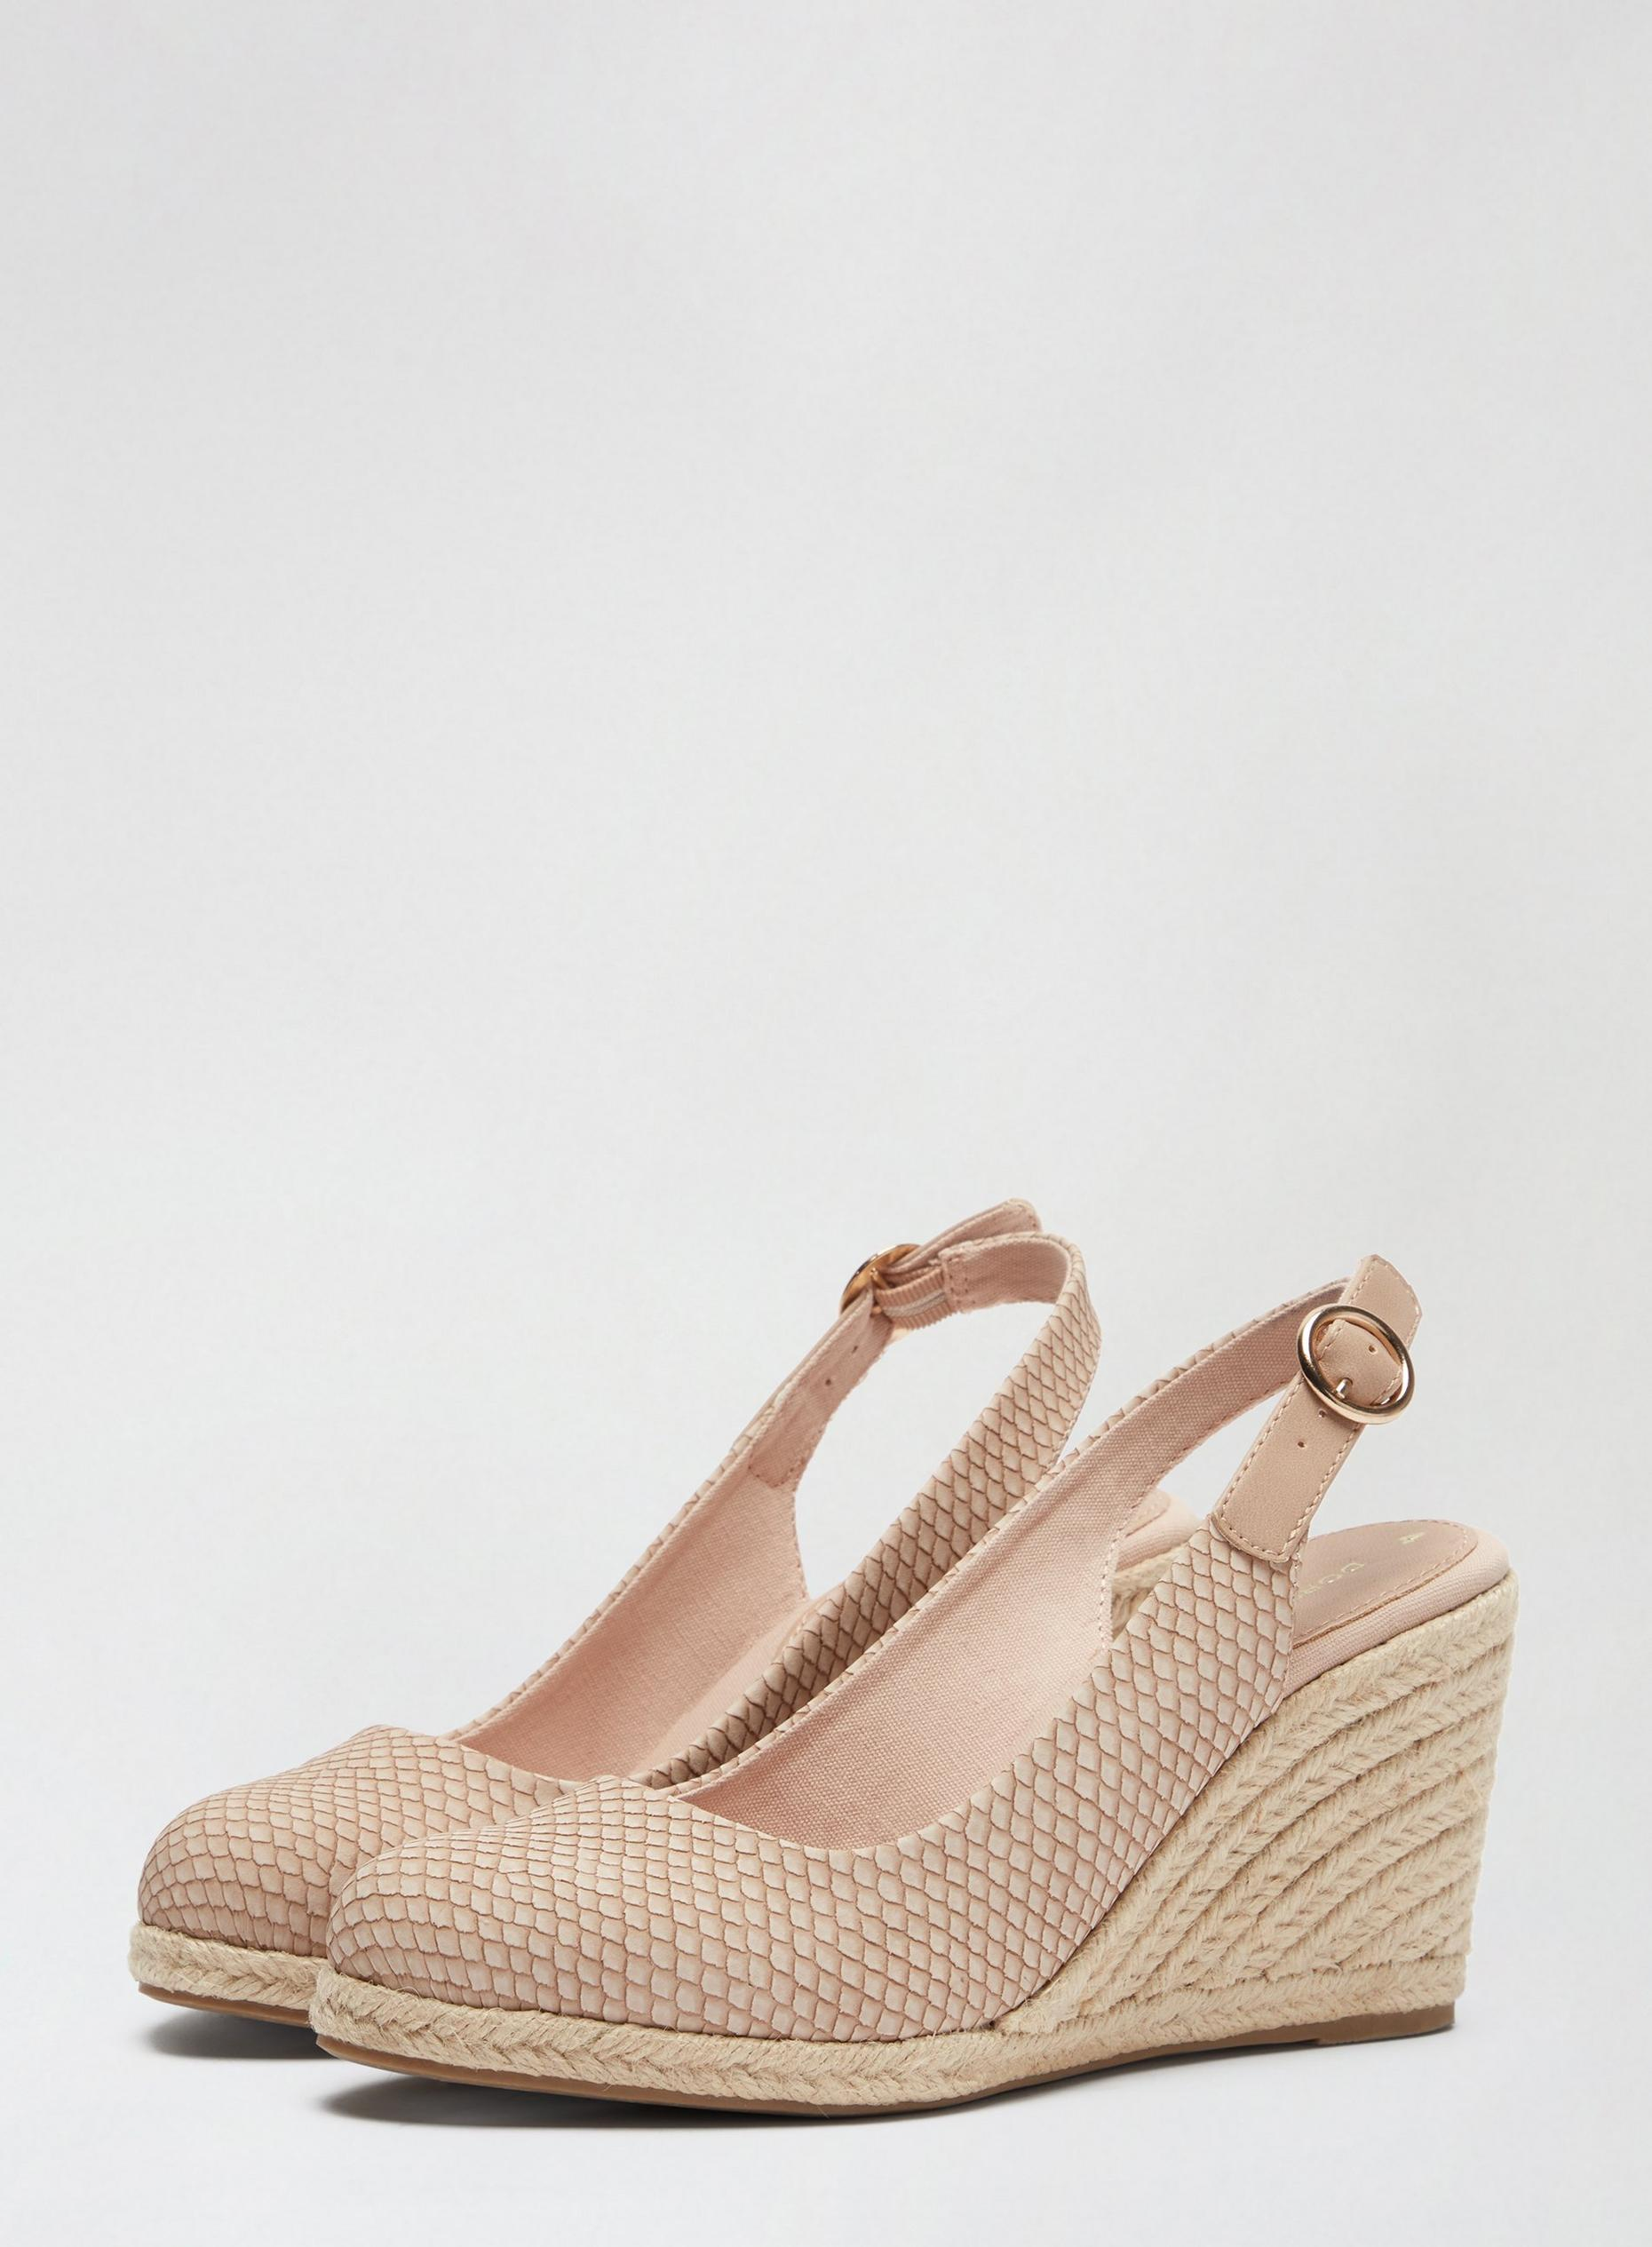 Blush Devon Court Shoes